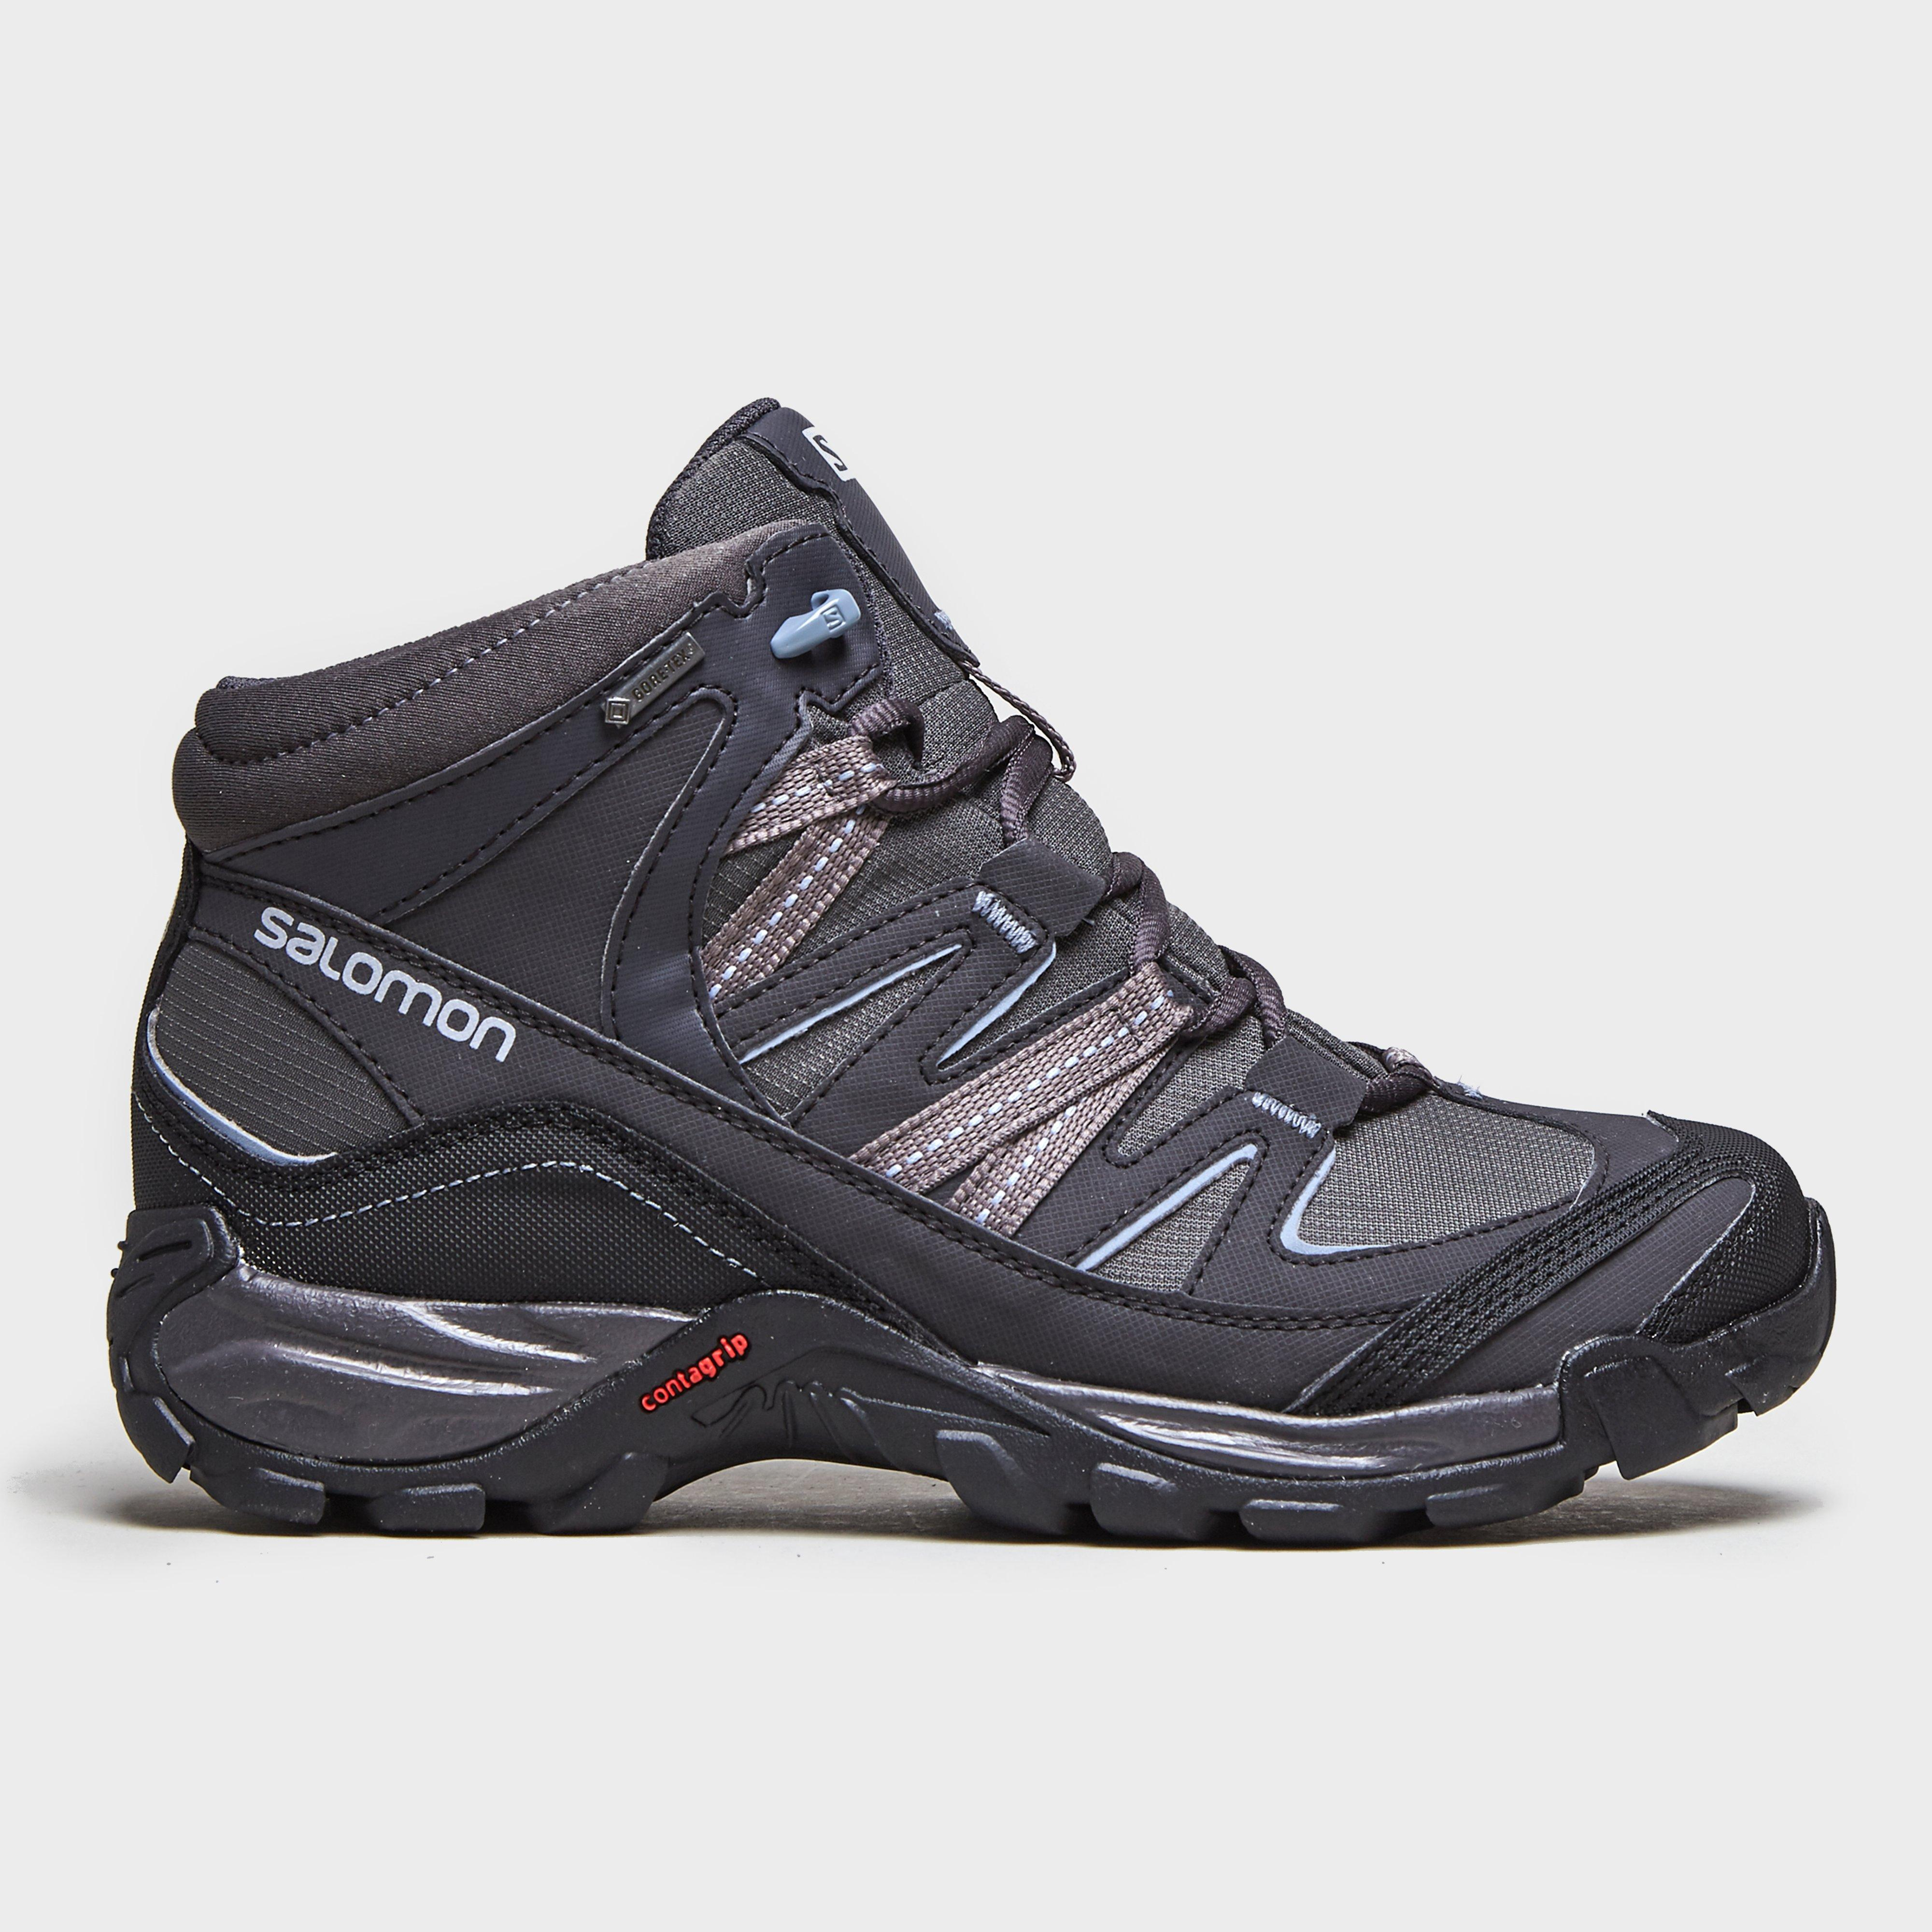 Salomon Walking Shoes Womens Gtx